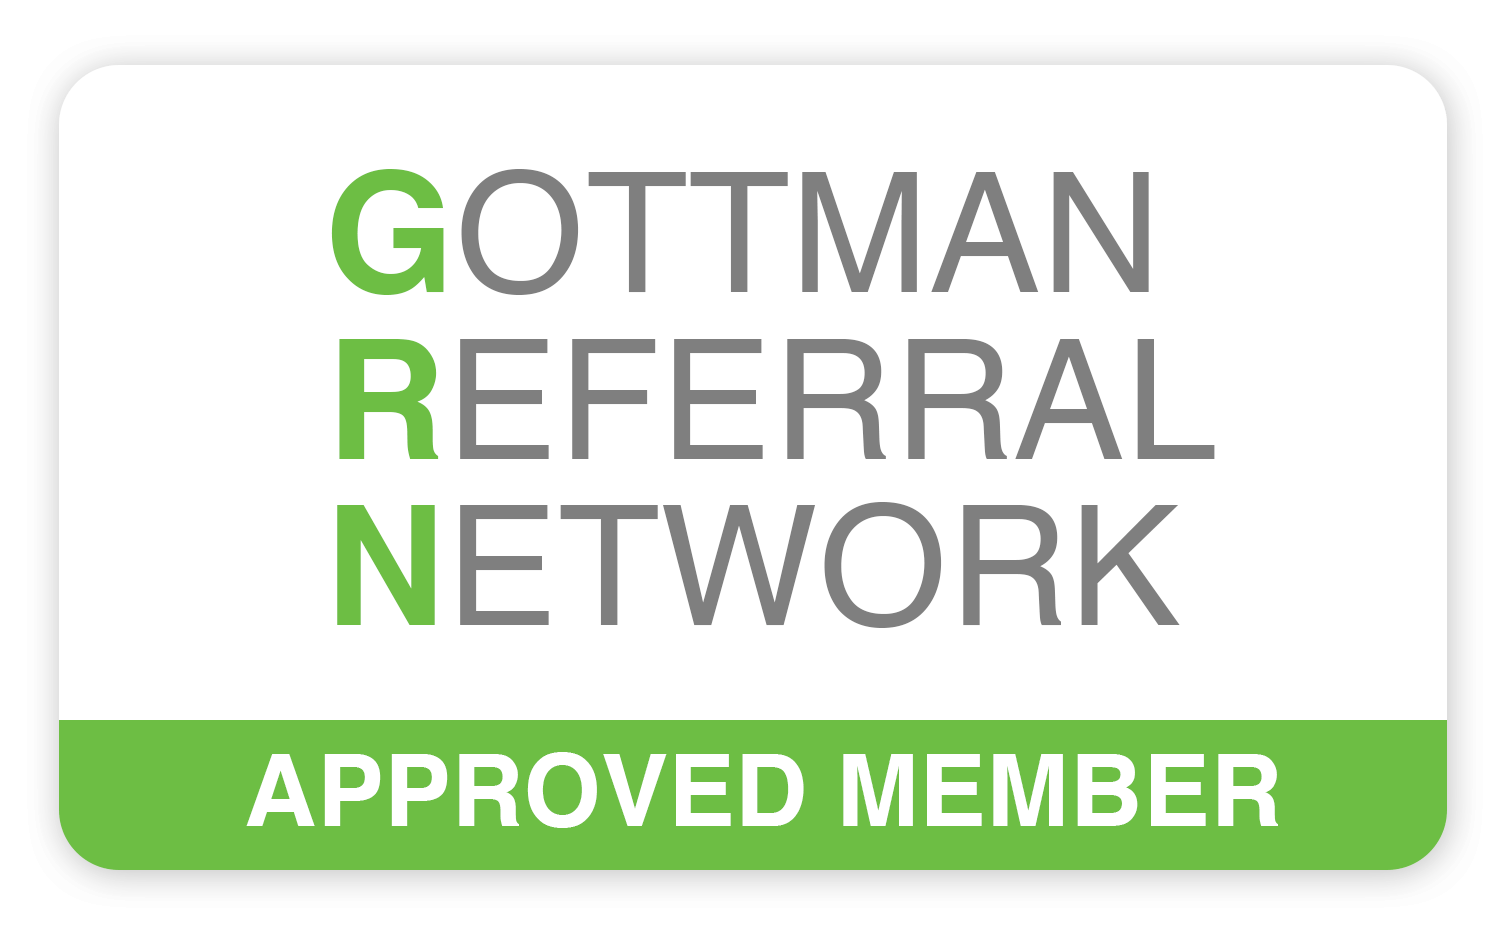 Caroline Resari's profile on the Gottman Referral Network